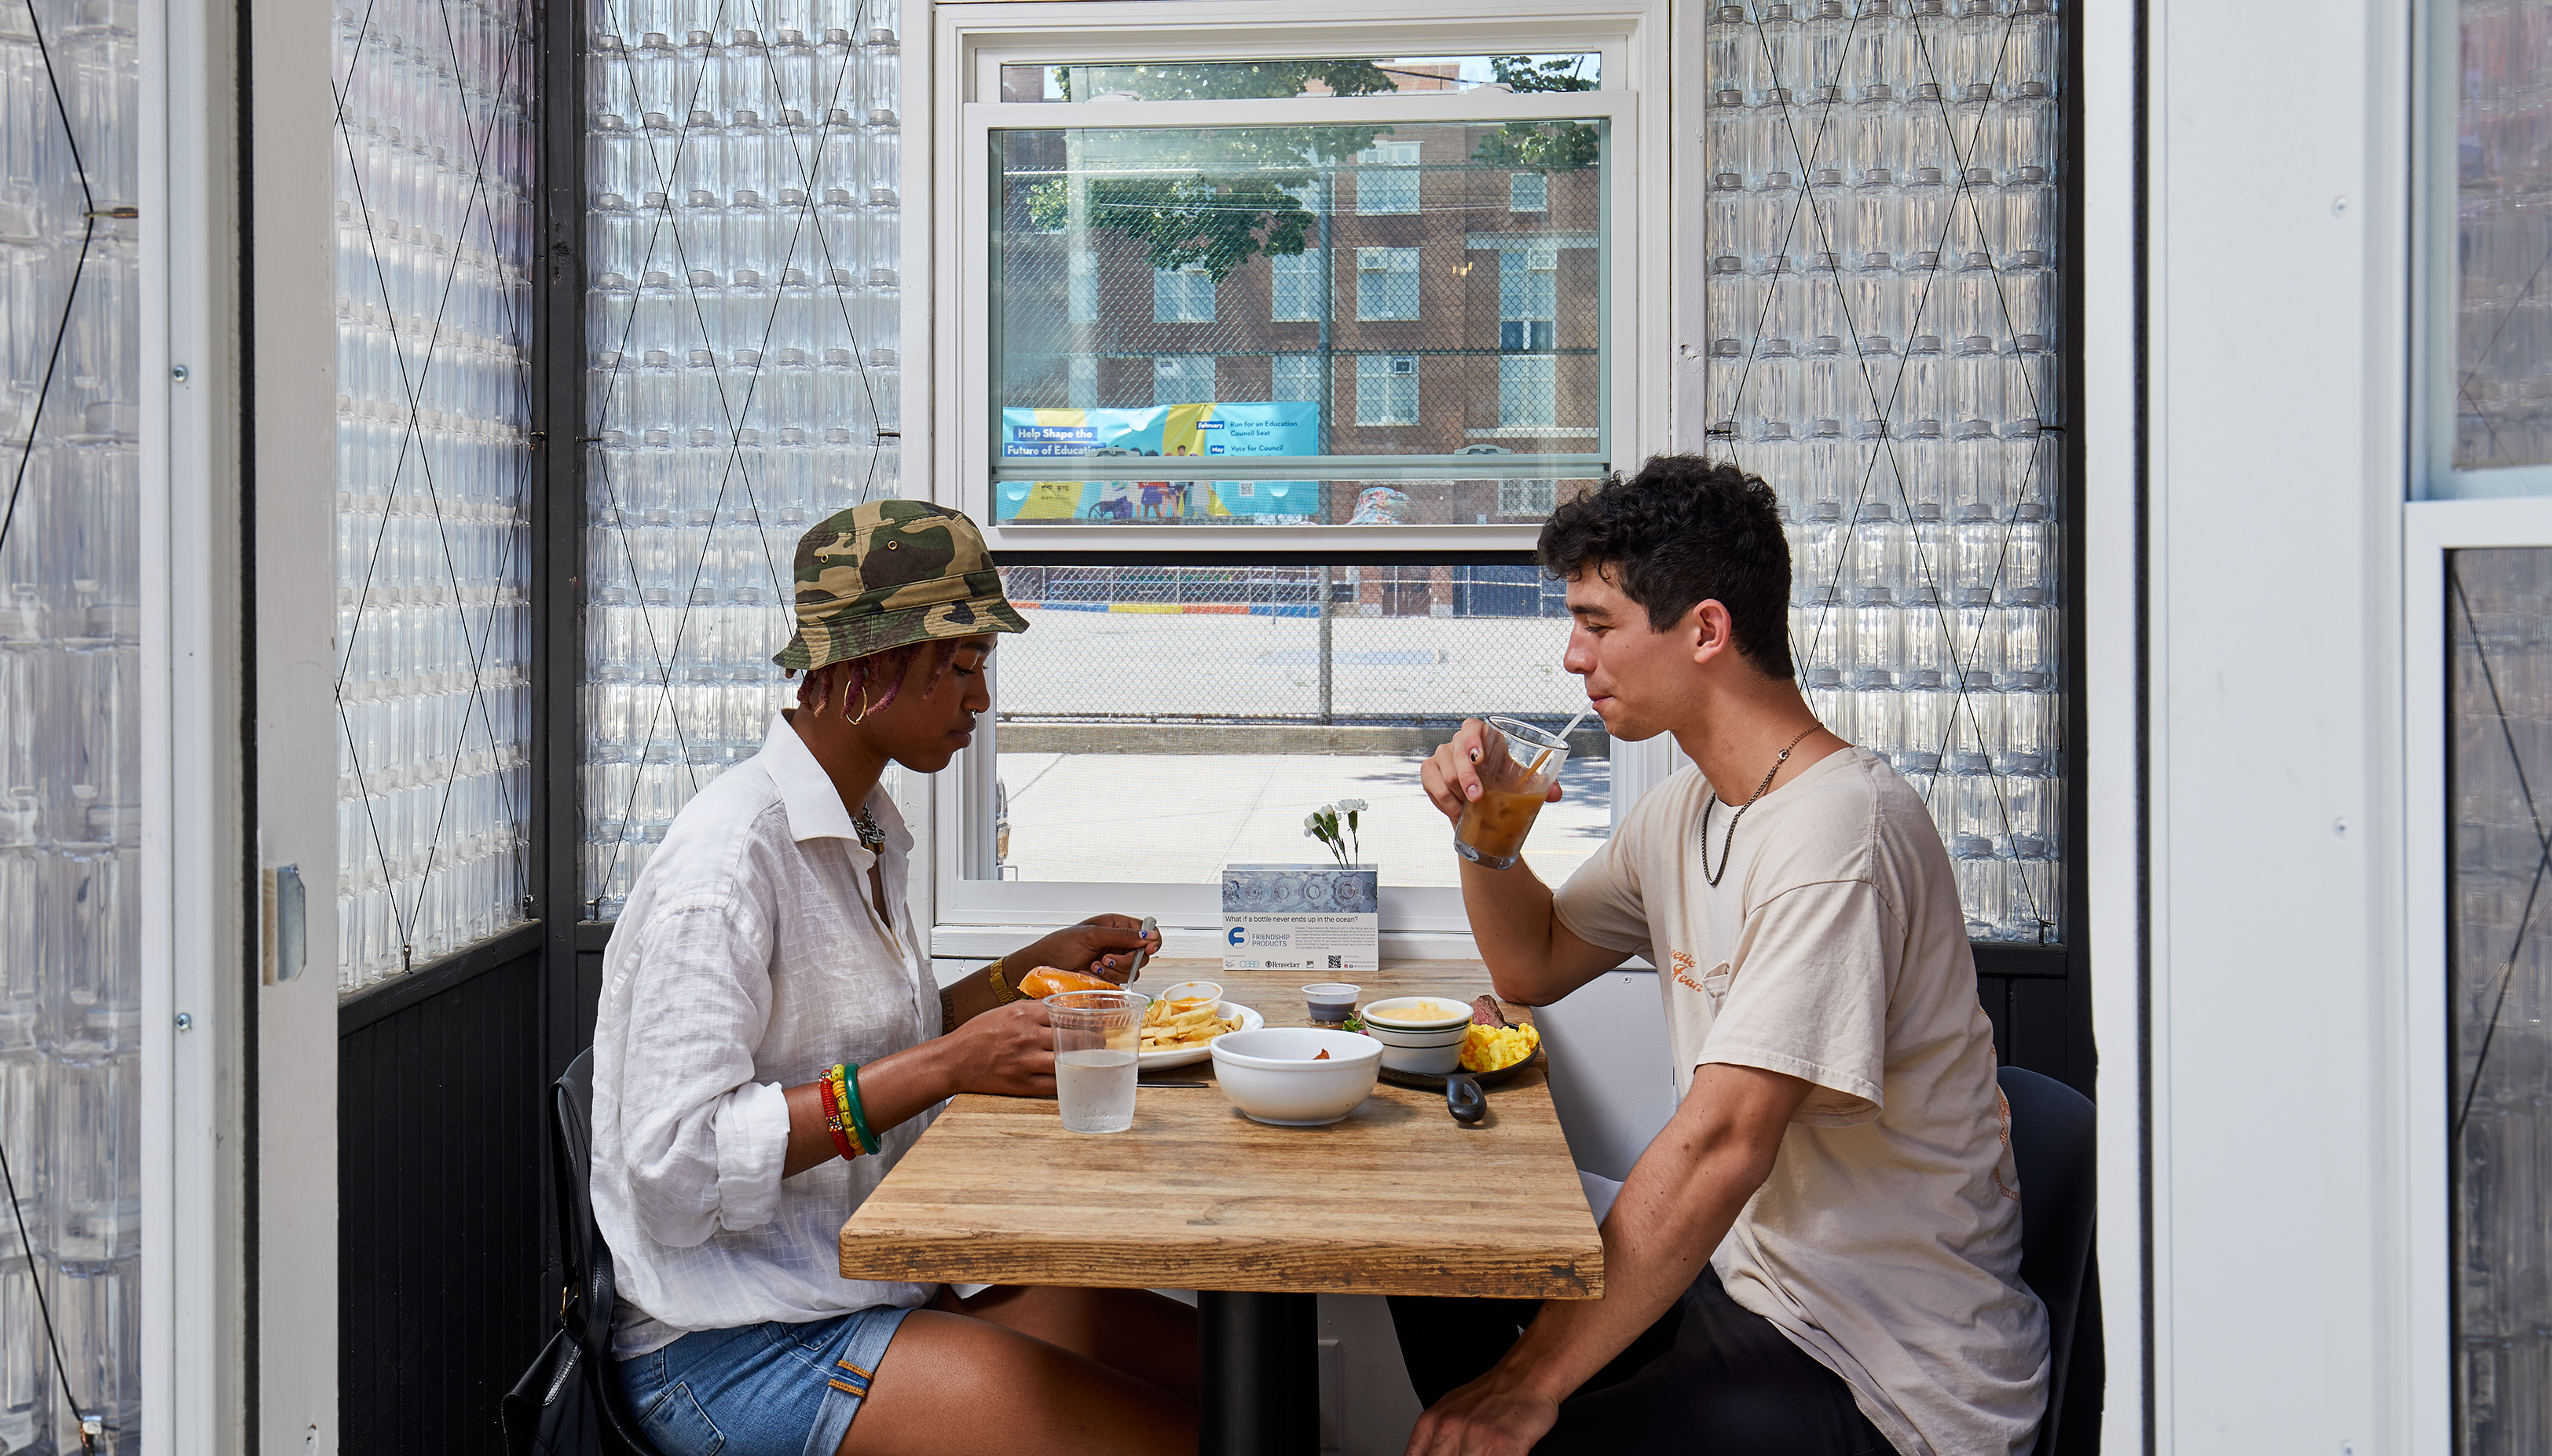 Two people eating inside a Friendship Cabin